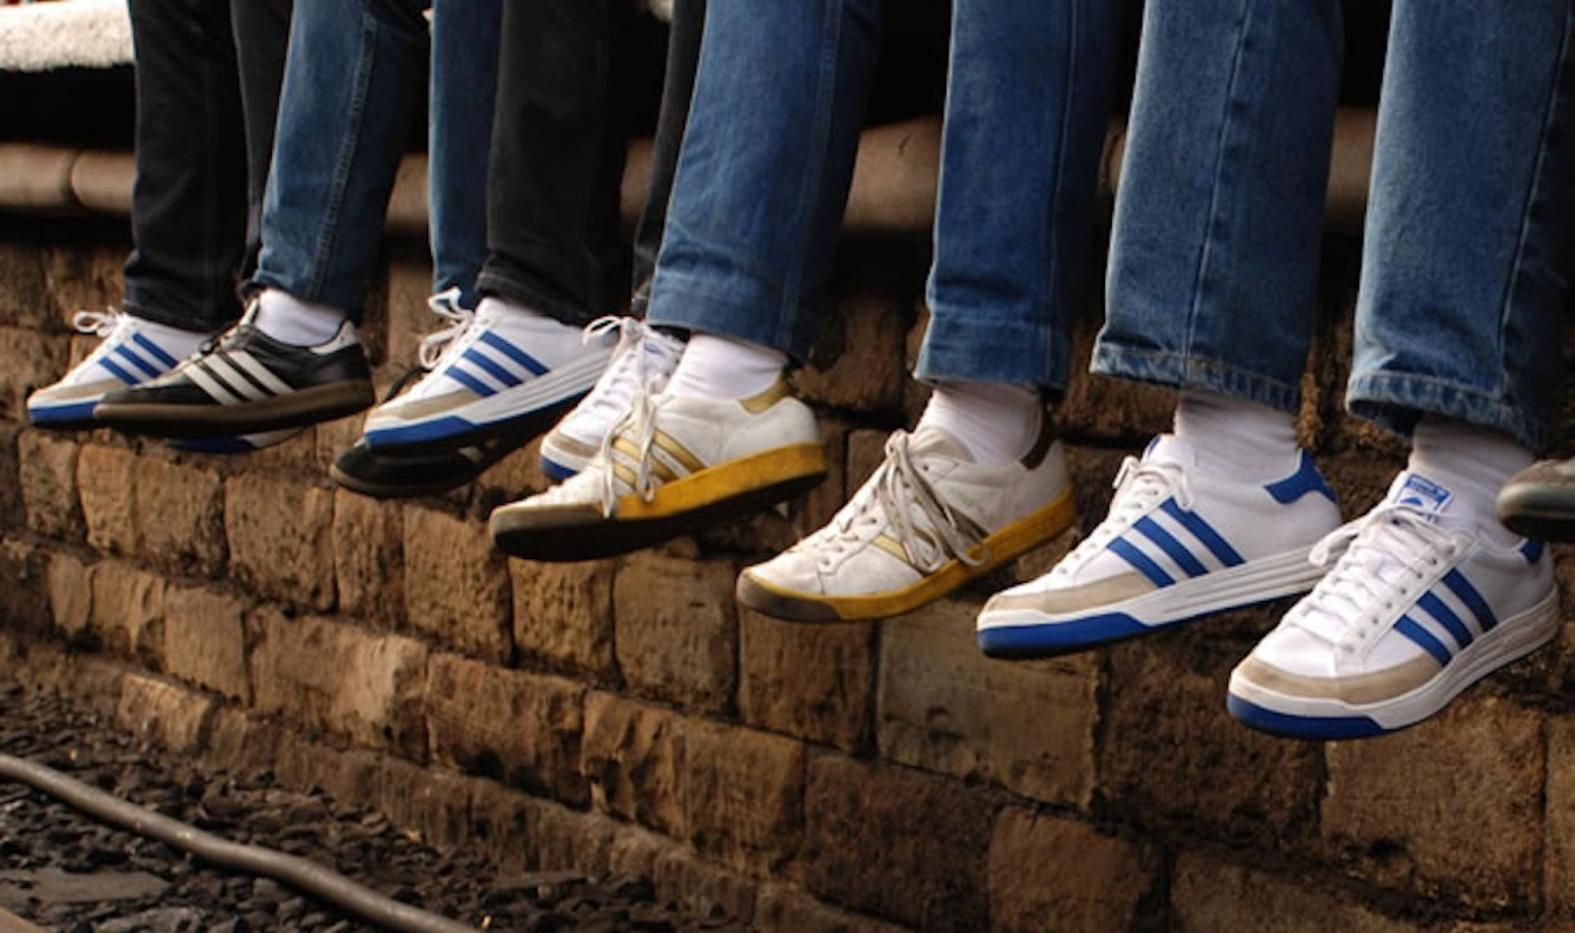 22 Best casually obsessed images | Football casuals, Adidas